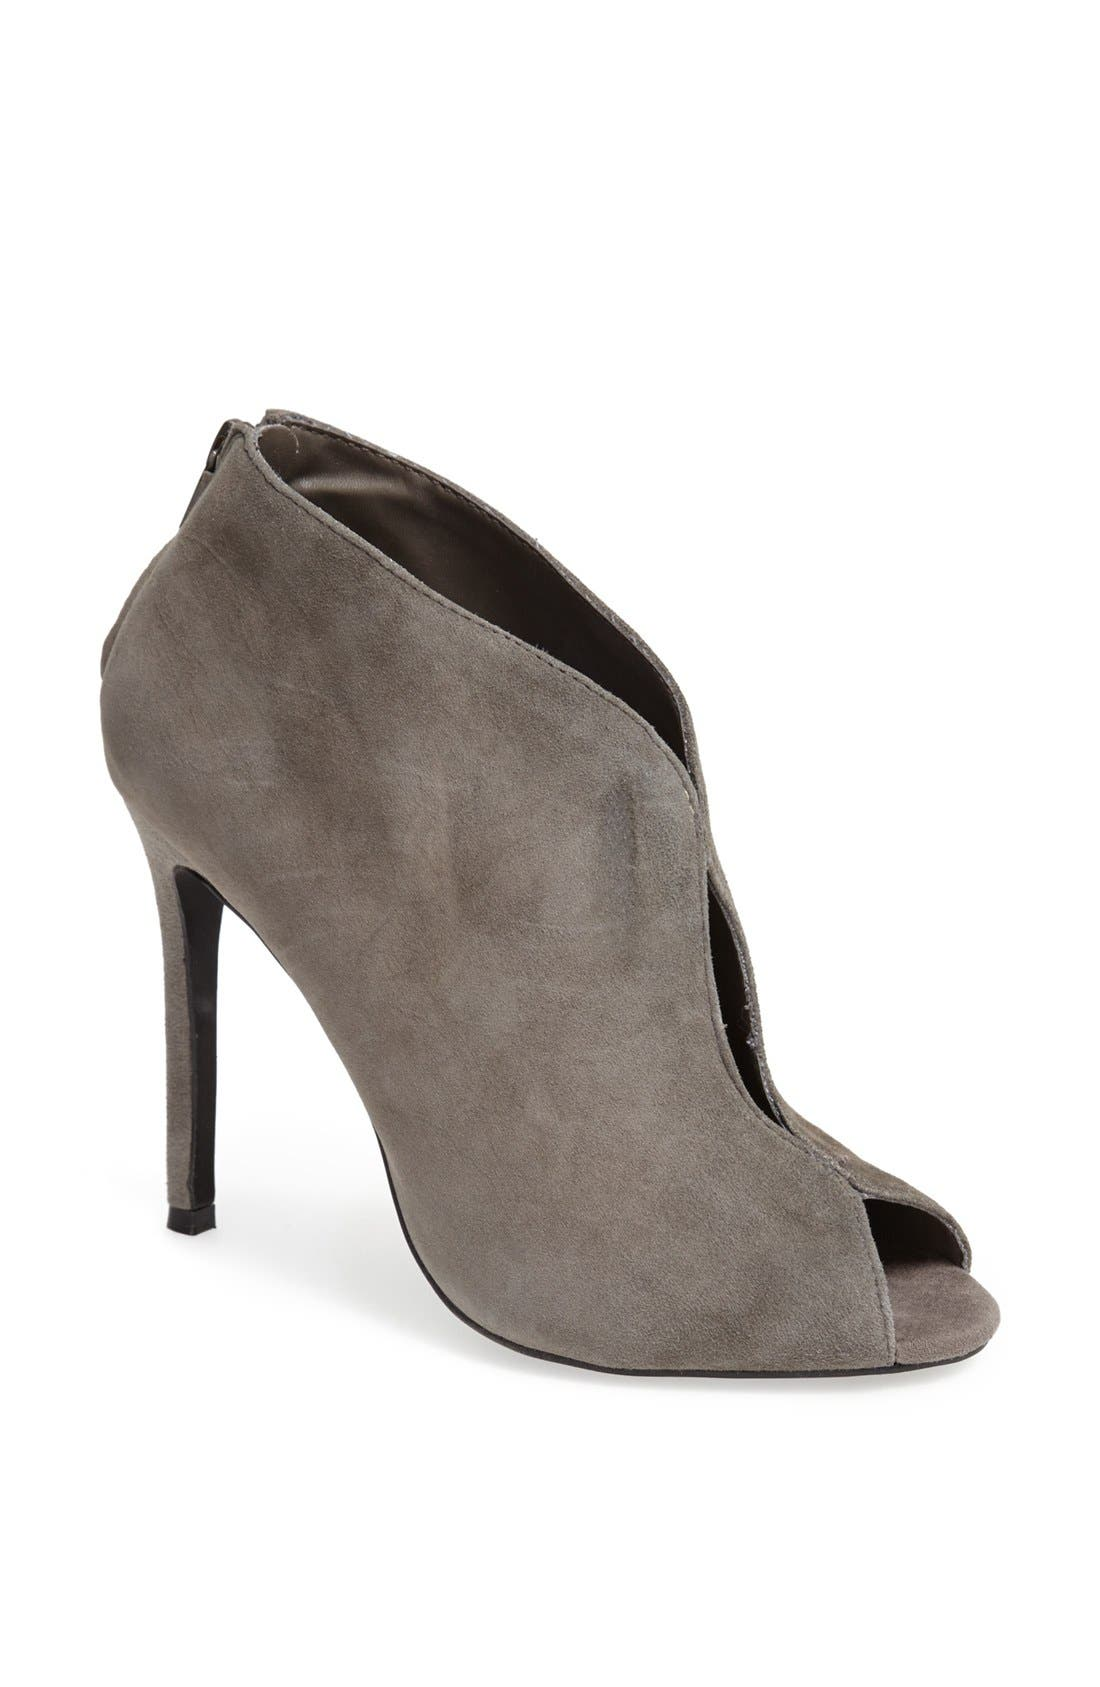 Alternate Image 1 Selected - Steve Madden 'Imaginee' Peep Toe Bootie